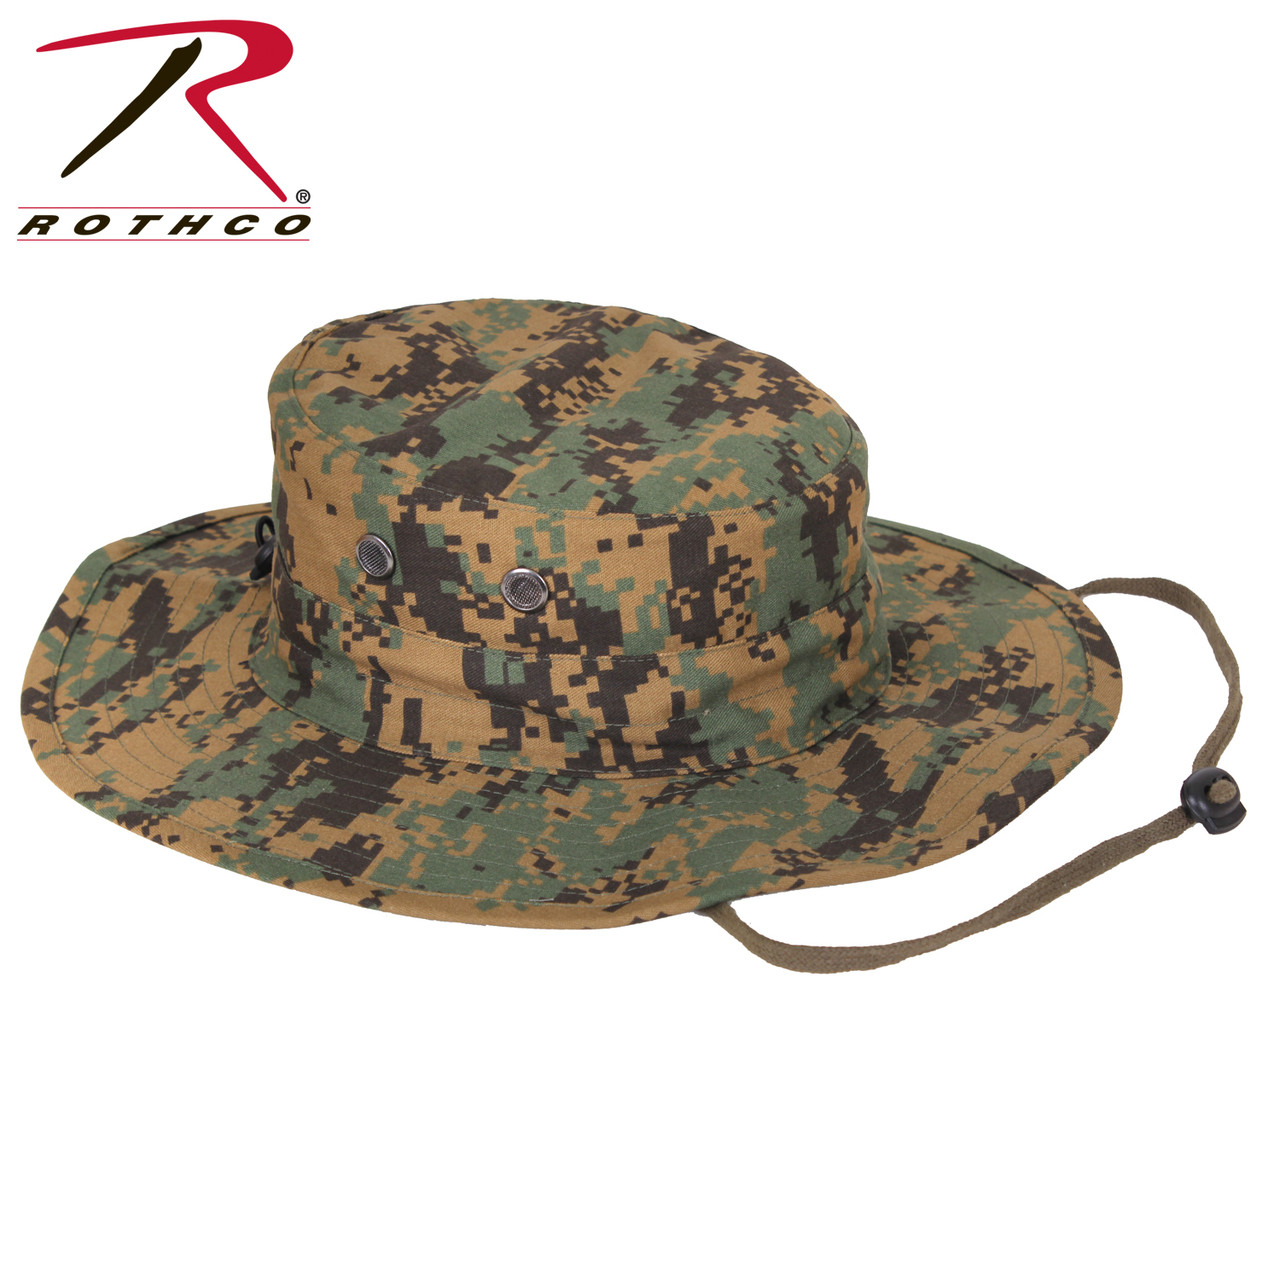 e13775af2cb Rothco Adjustable Boonie Hat - Woodland Digital Camo - Hero Outdoors